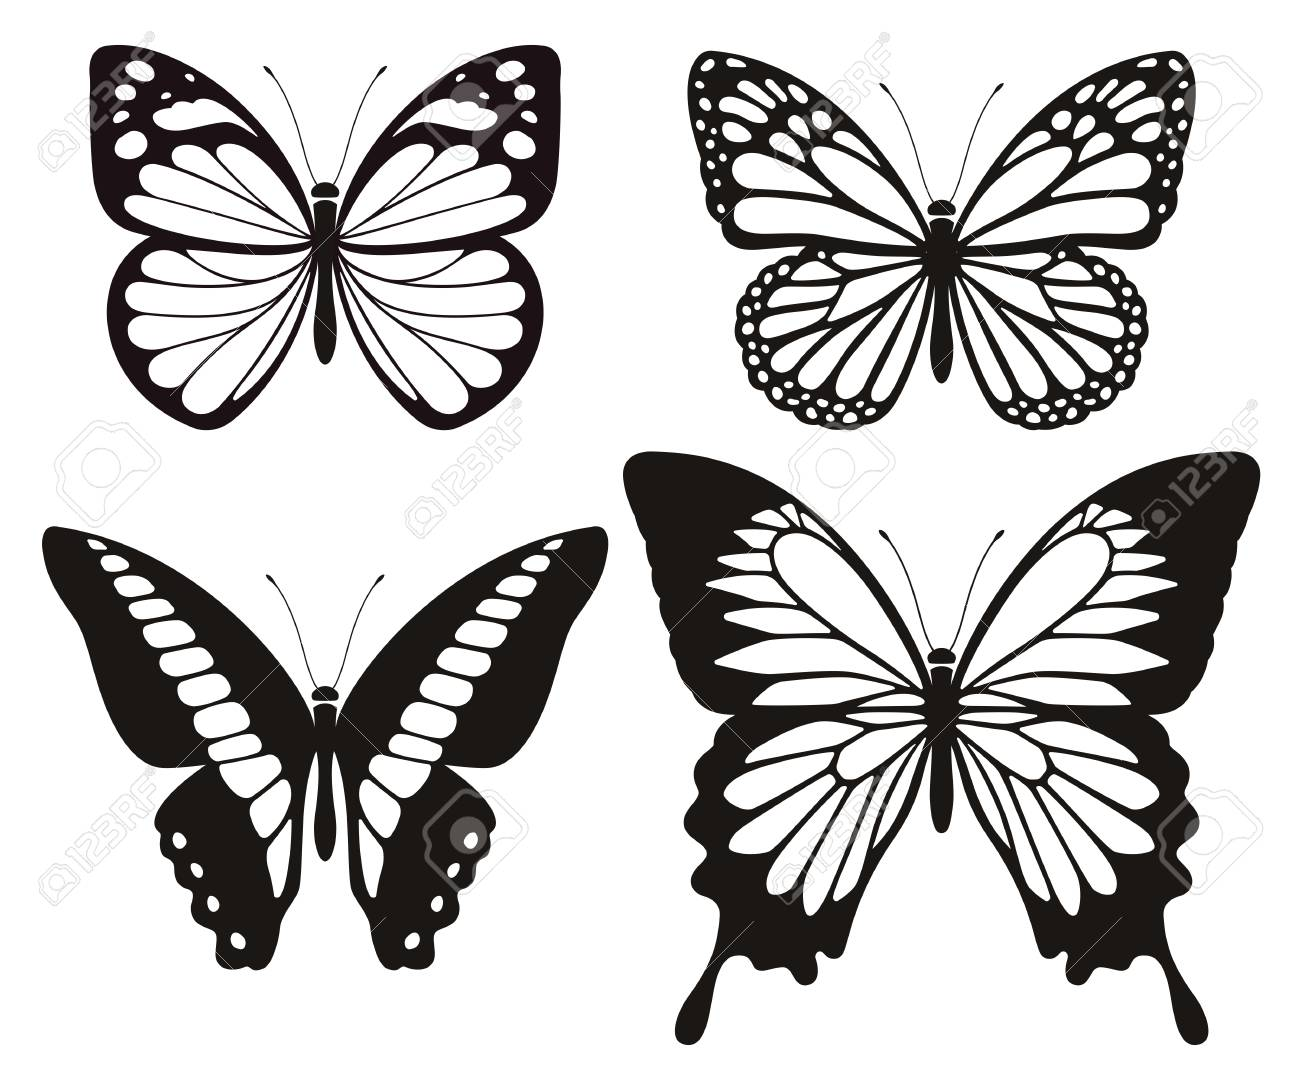 Butterfly silhouette icons set. Vector Illustrations. - 94044134